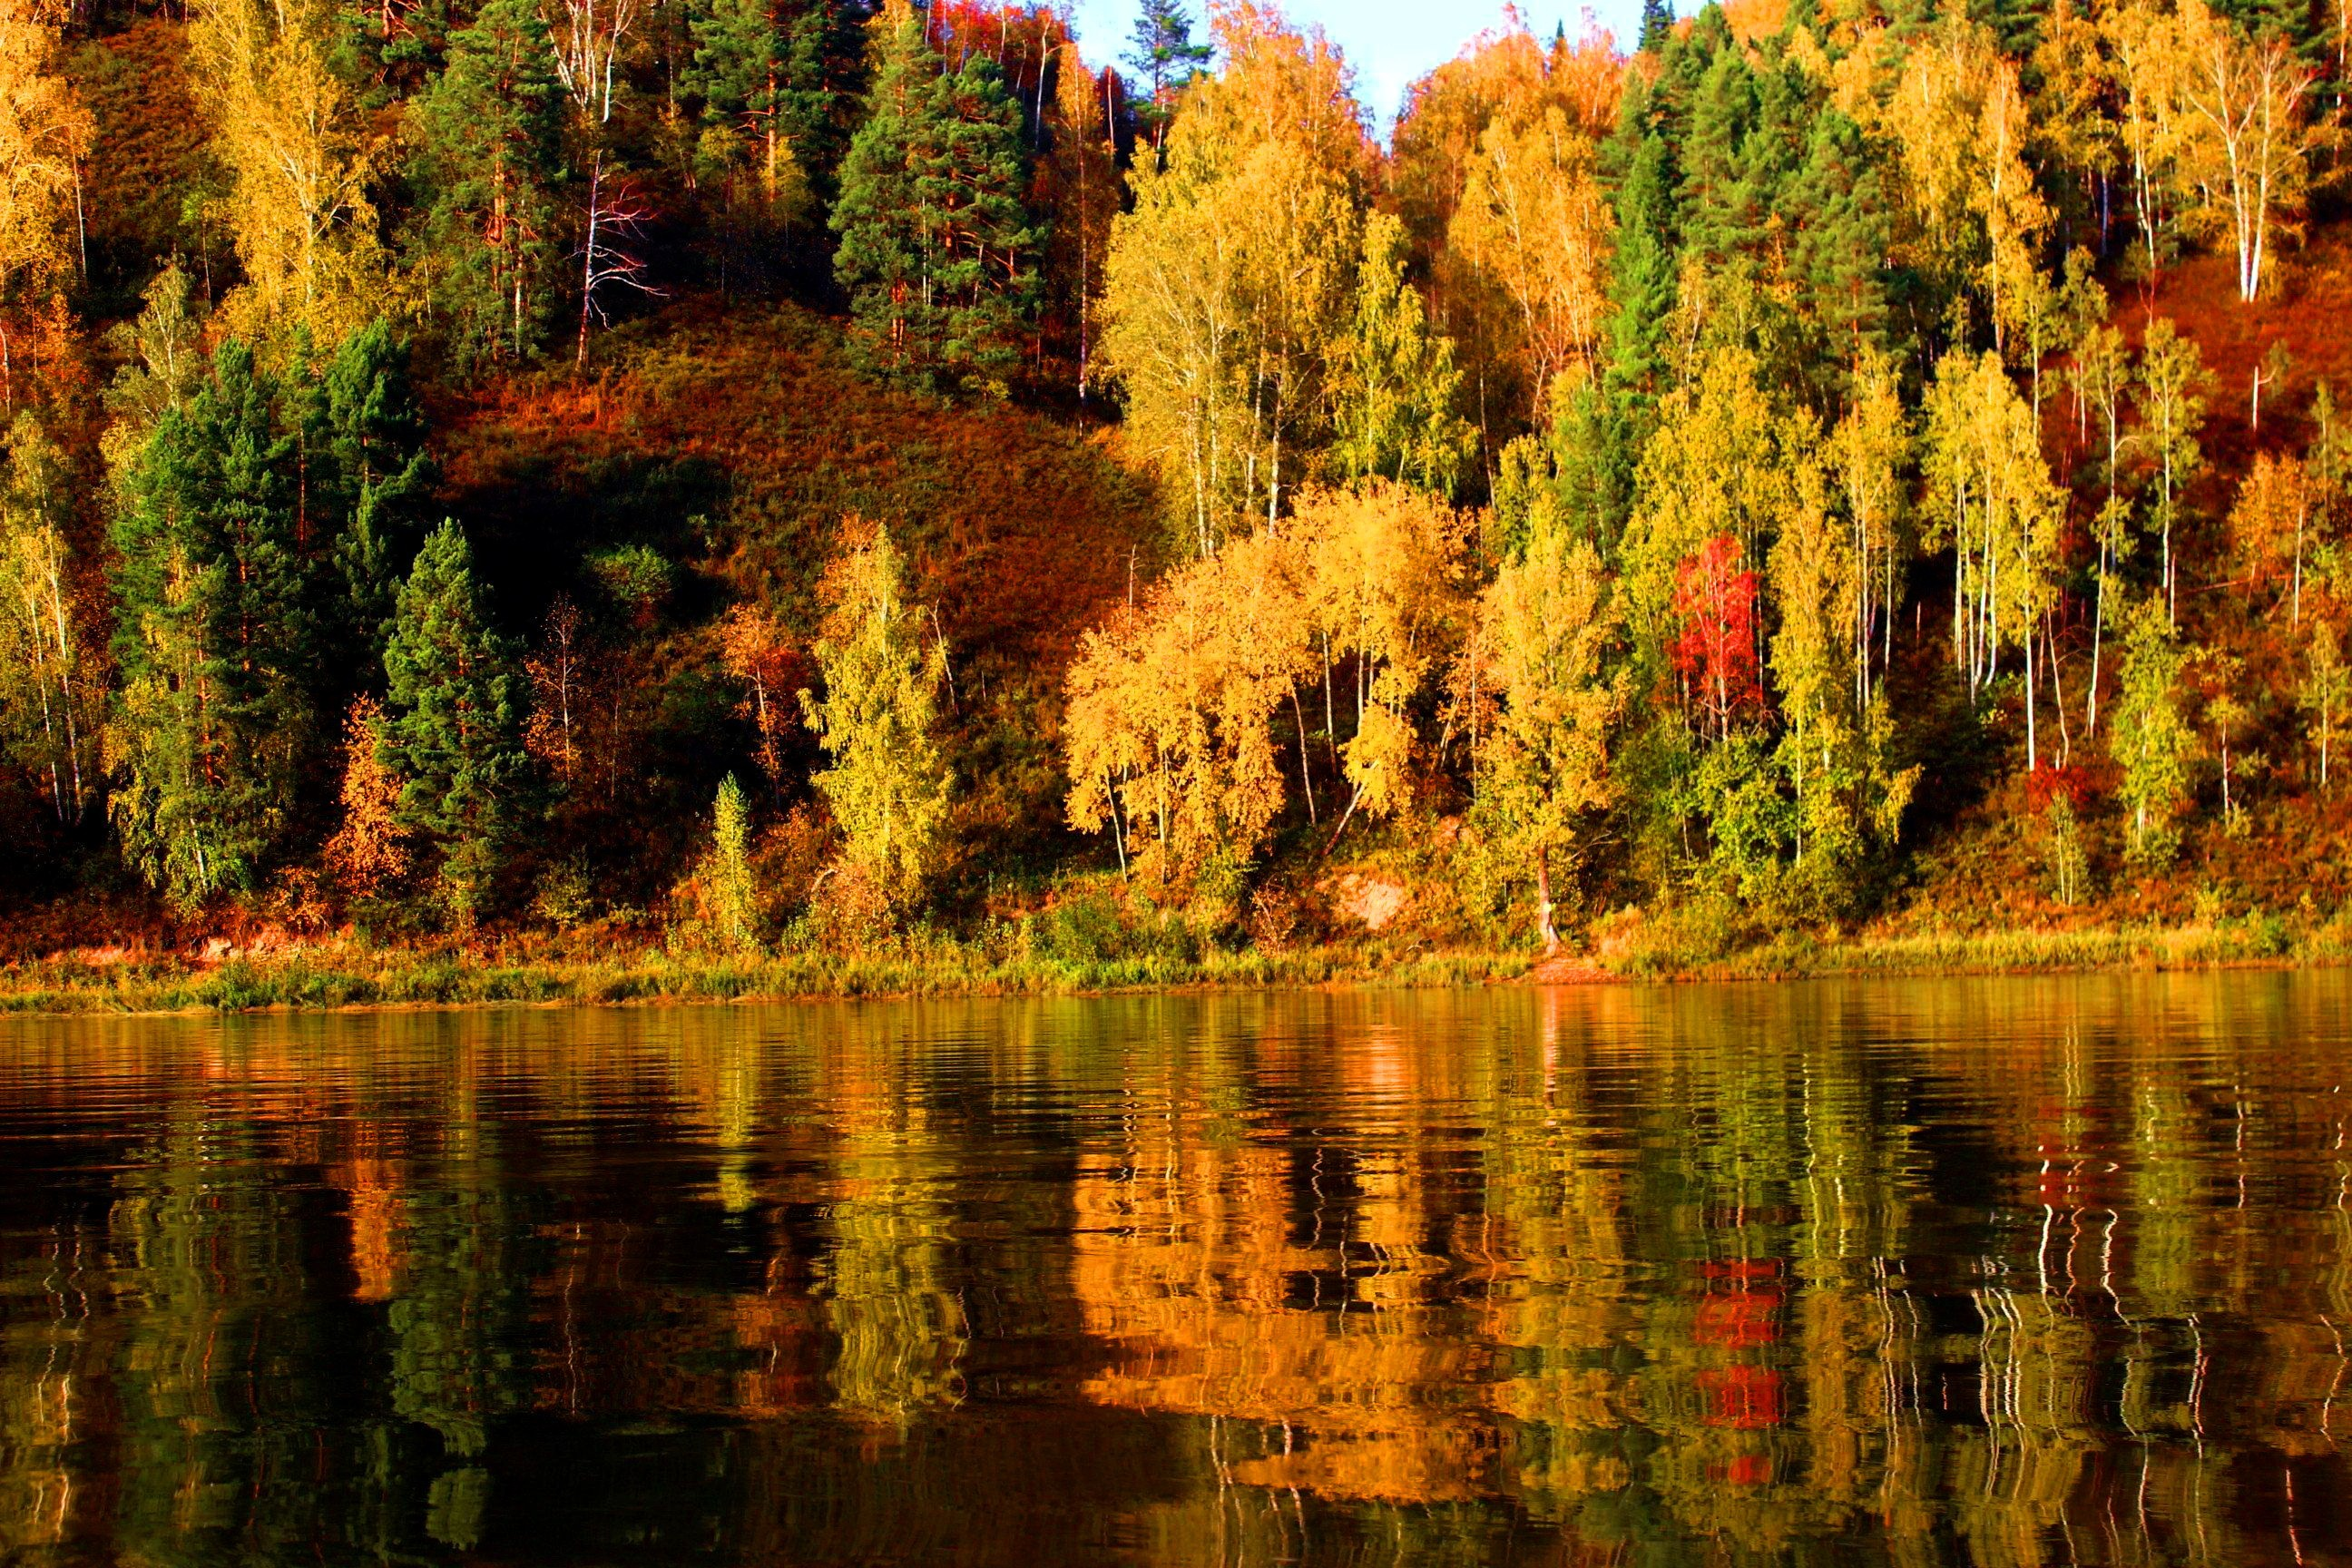 Lake Trees River Tranquility Shore Fall Beautiful Foliage Calmness ...